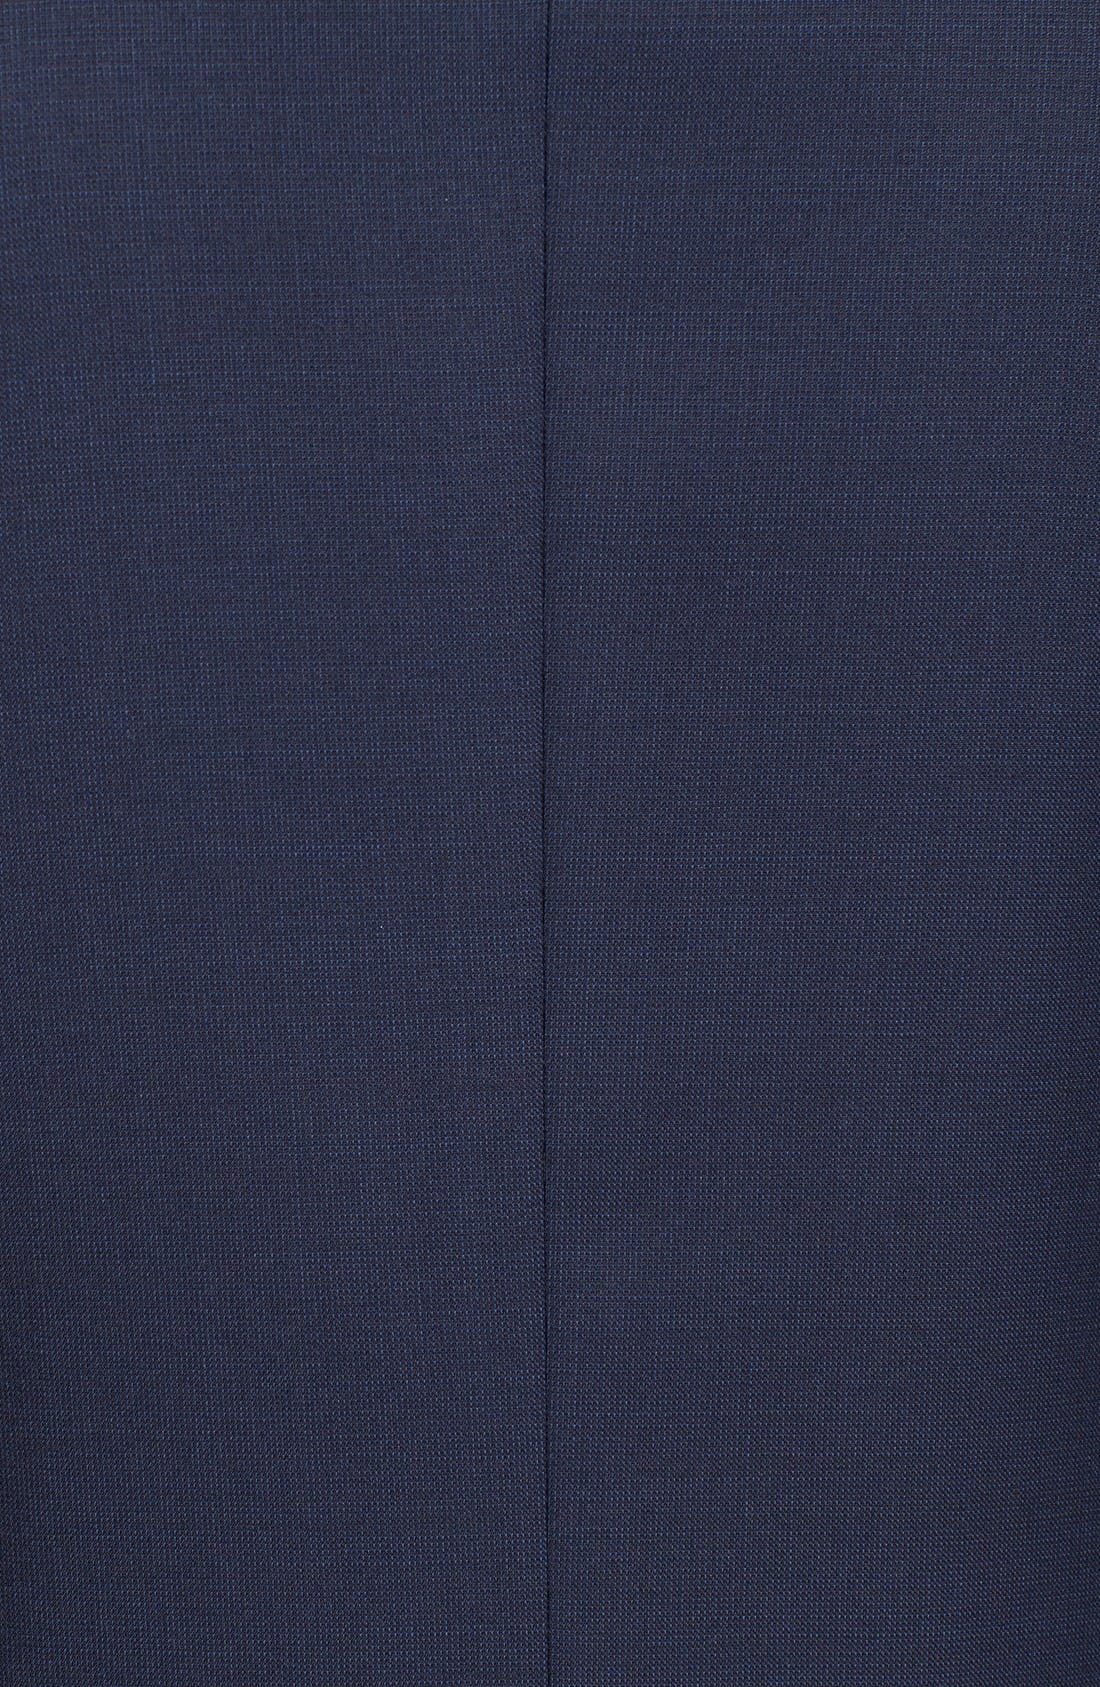 Trevi Trim Fit Wool Blazer,                             Alternate thumbnail 6, color,                             Navy